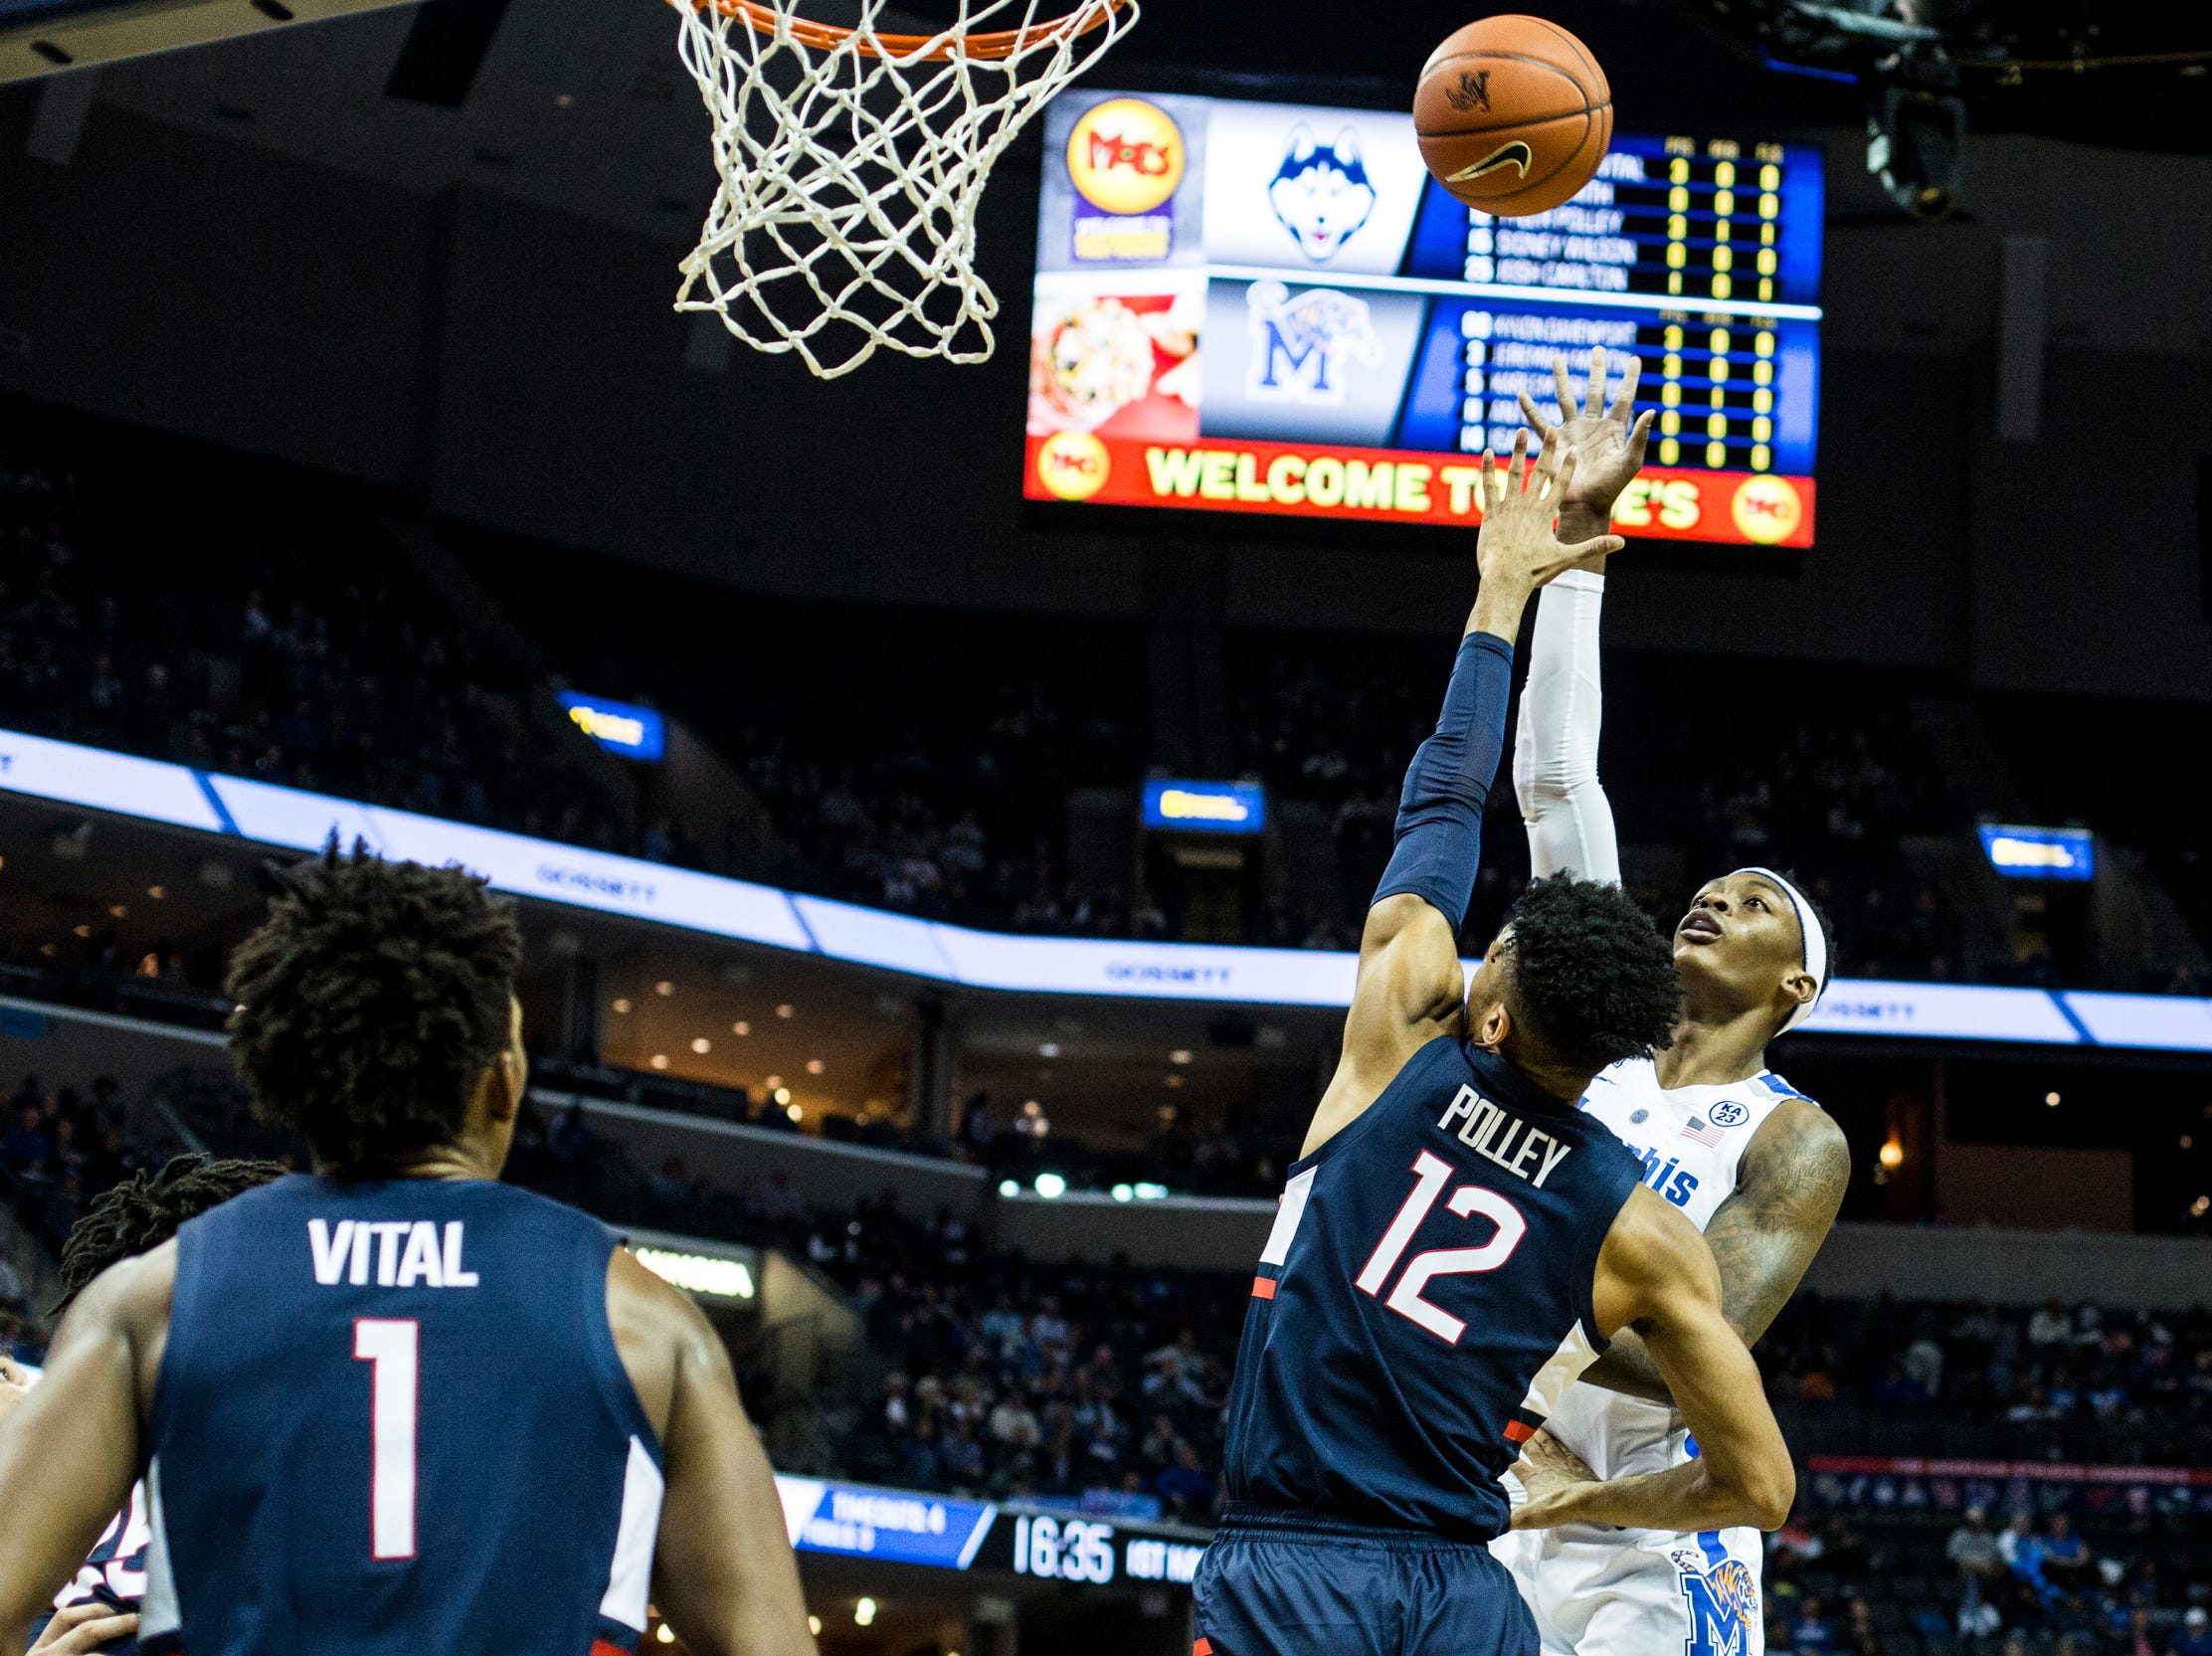 February 10, 2019 - Kyvon Davenport attempts a shot during Sunday's game versus Connecticut at the FedExForum.